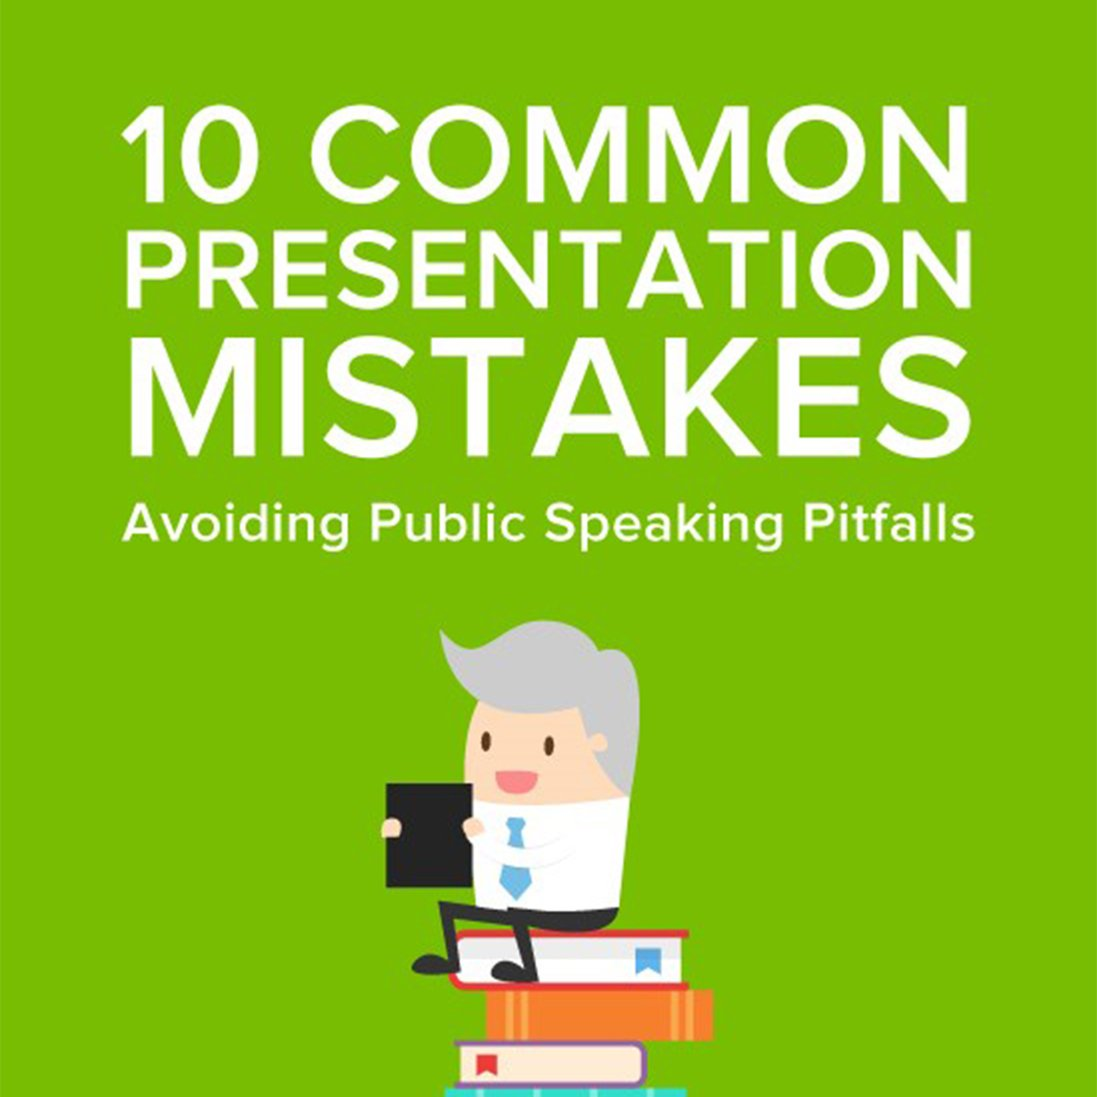 10 Common Presentation Mistakes - Communication Skills From Mind Tools